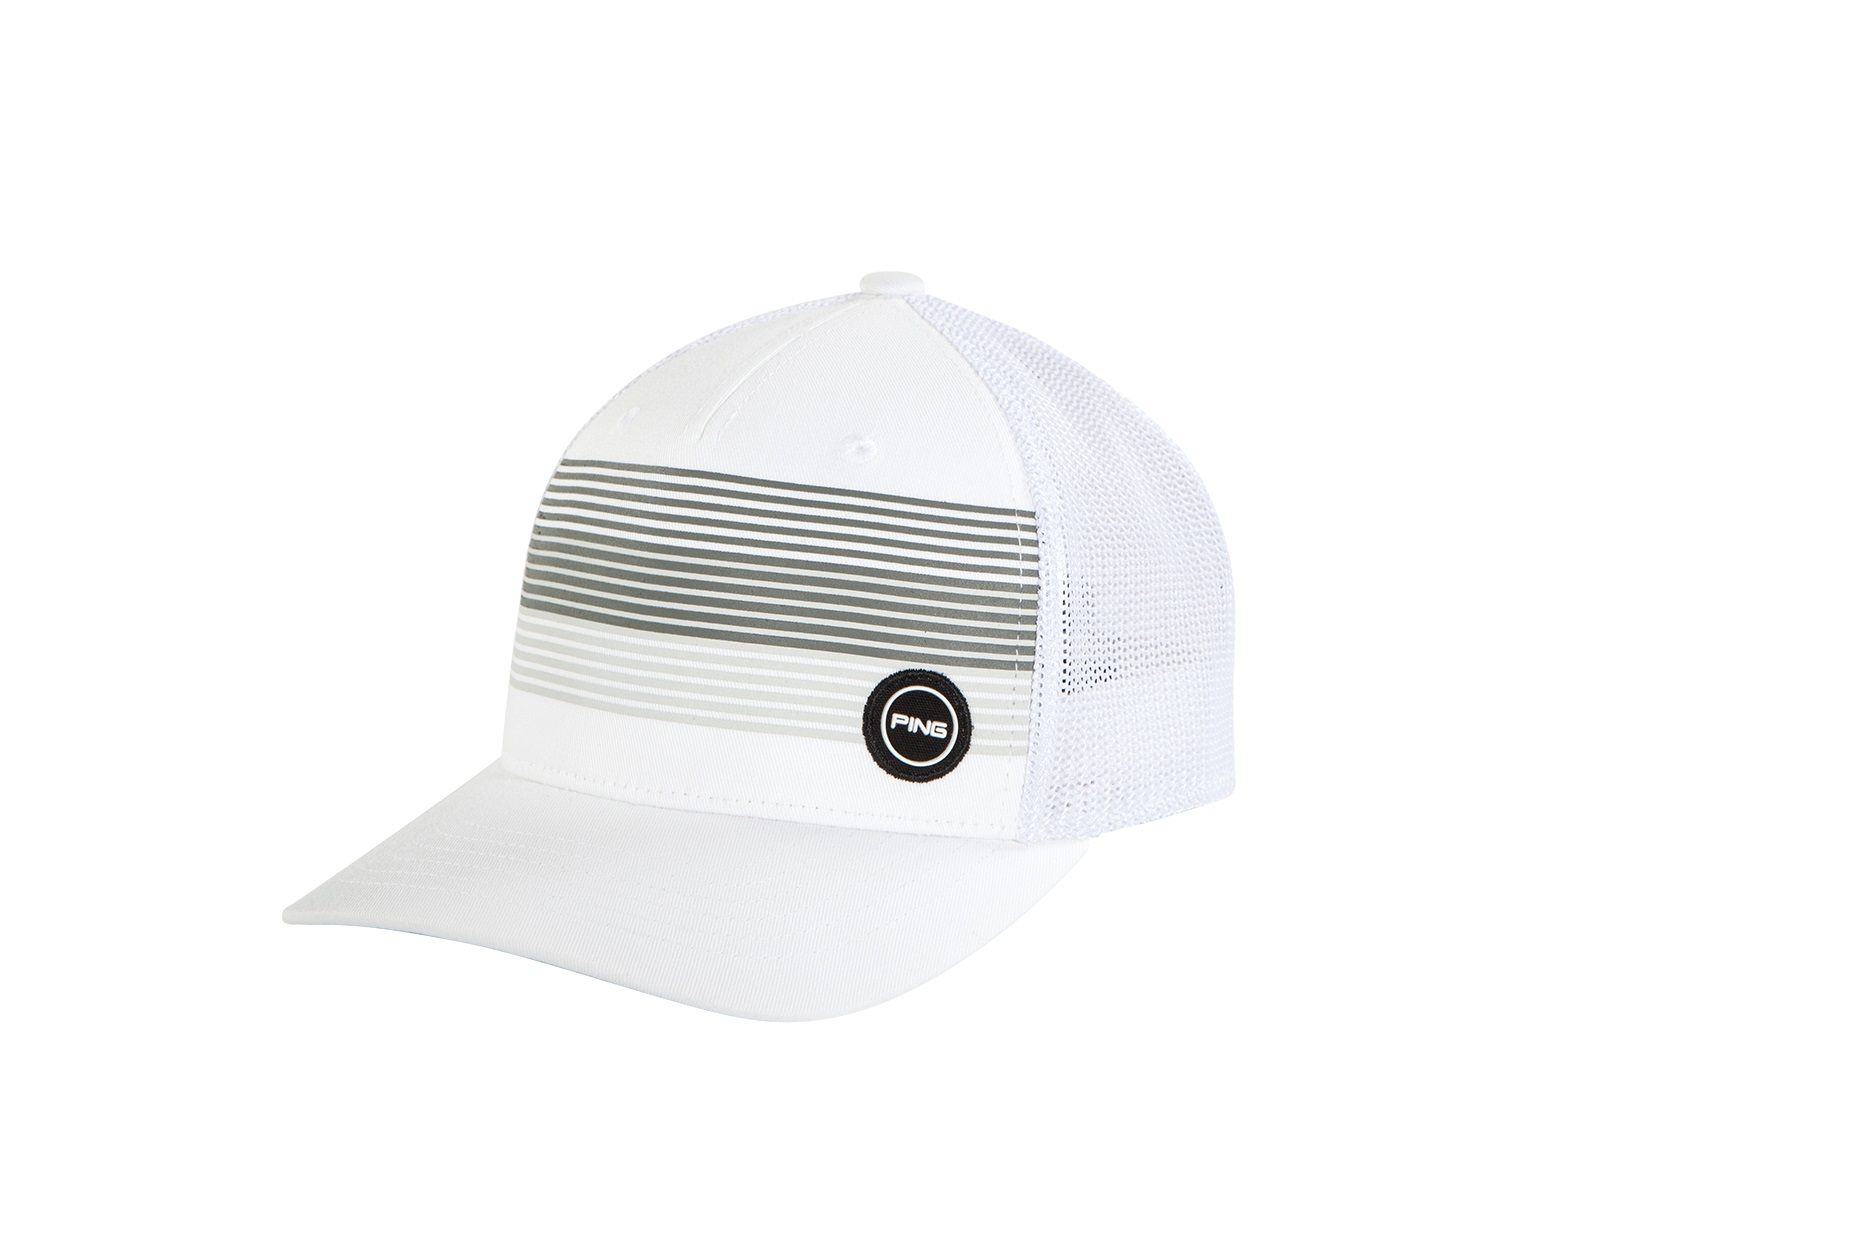 b4e1521f4a2 Ping - PING SPORT MESH HAT MENS FITTED GOLF HAT- NEW 2018 - PICK SIZE    COLOR - Walmart.com